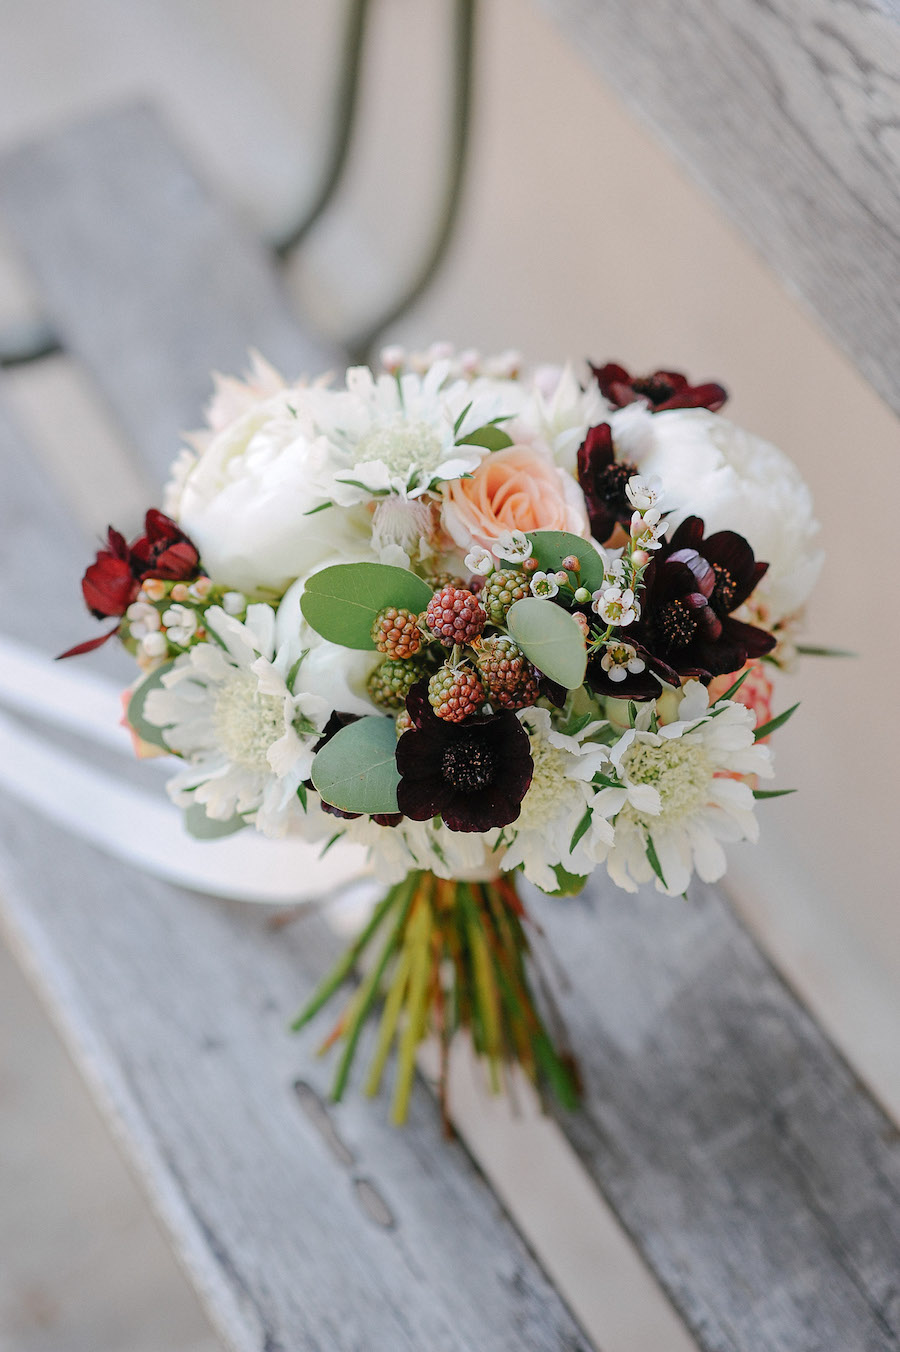 Bouquet Sposa Con Peonie.I 25 Bouquet Da Sposa Piu Belli Di Sempre Wedding Wonderland